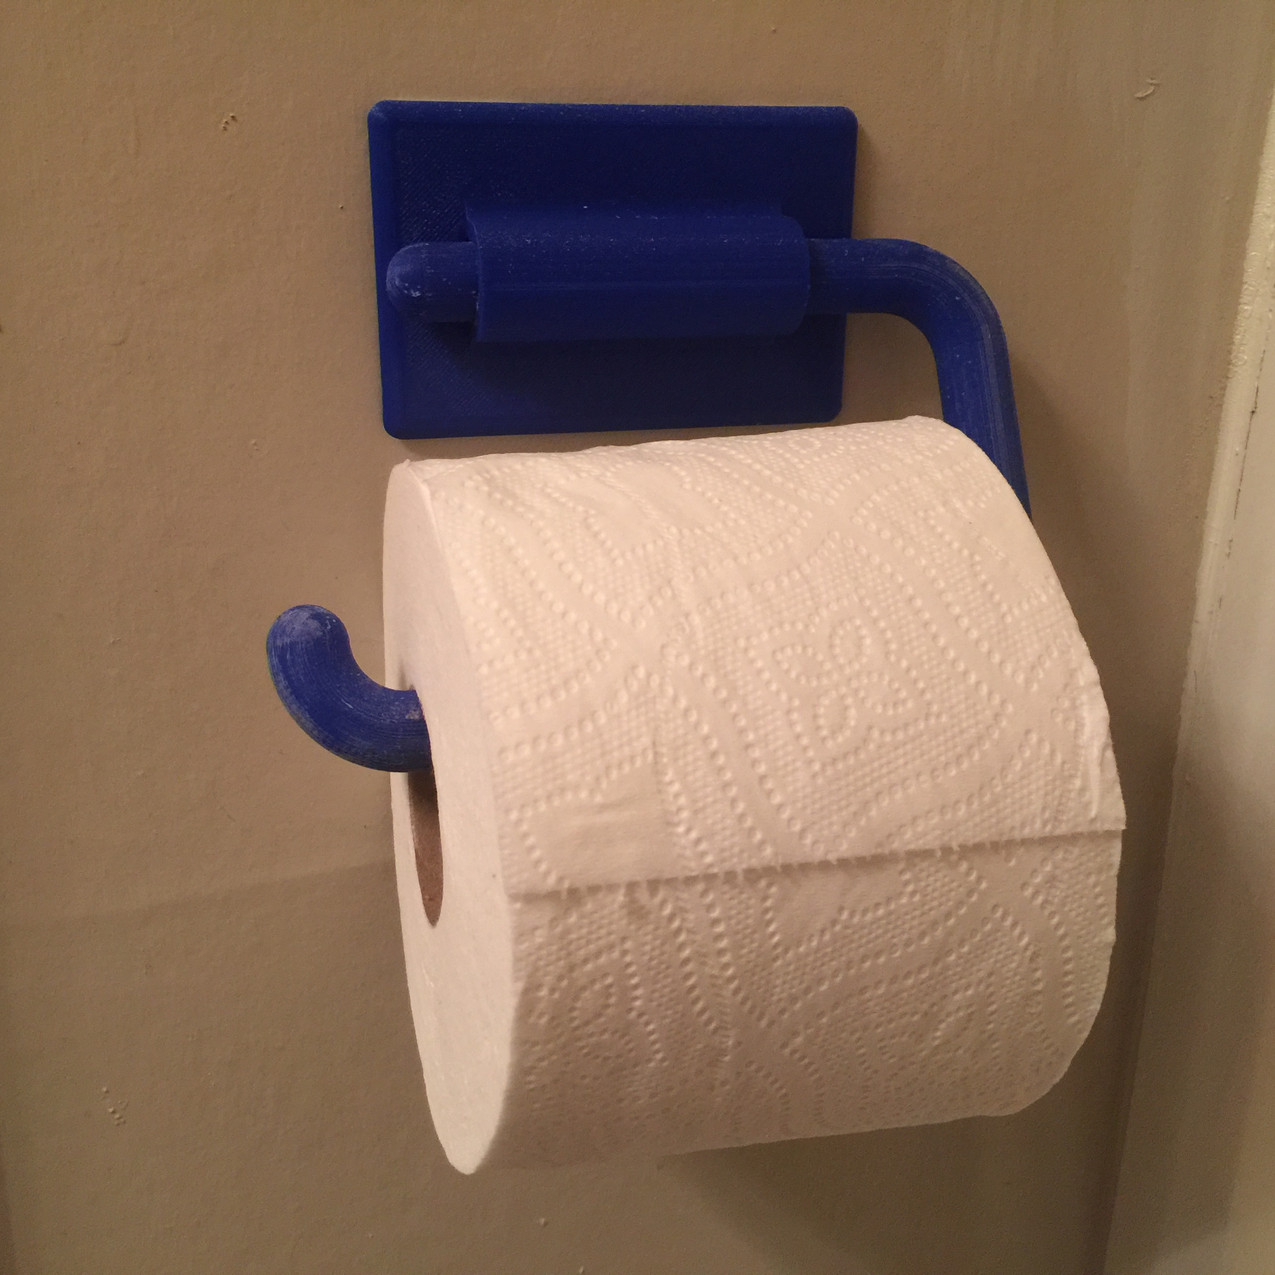 3D printed toilet paper roll holder